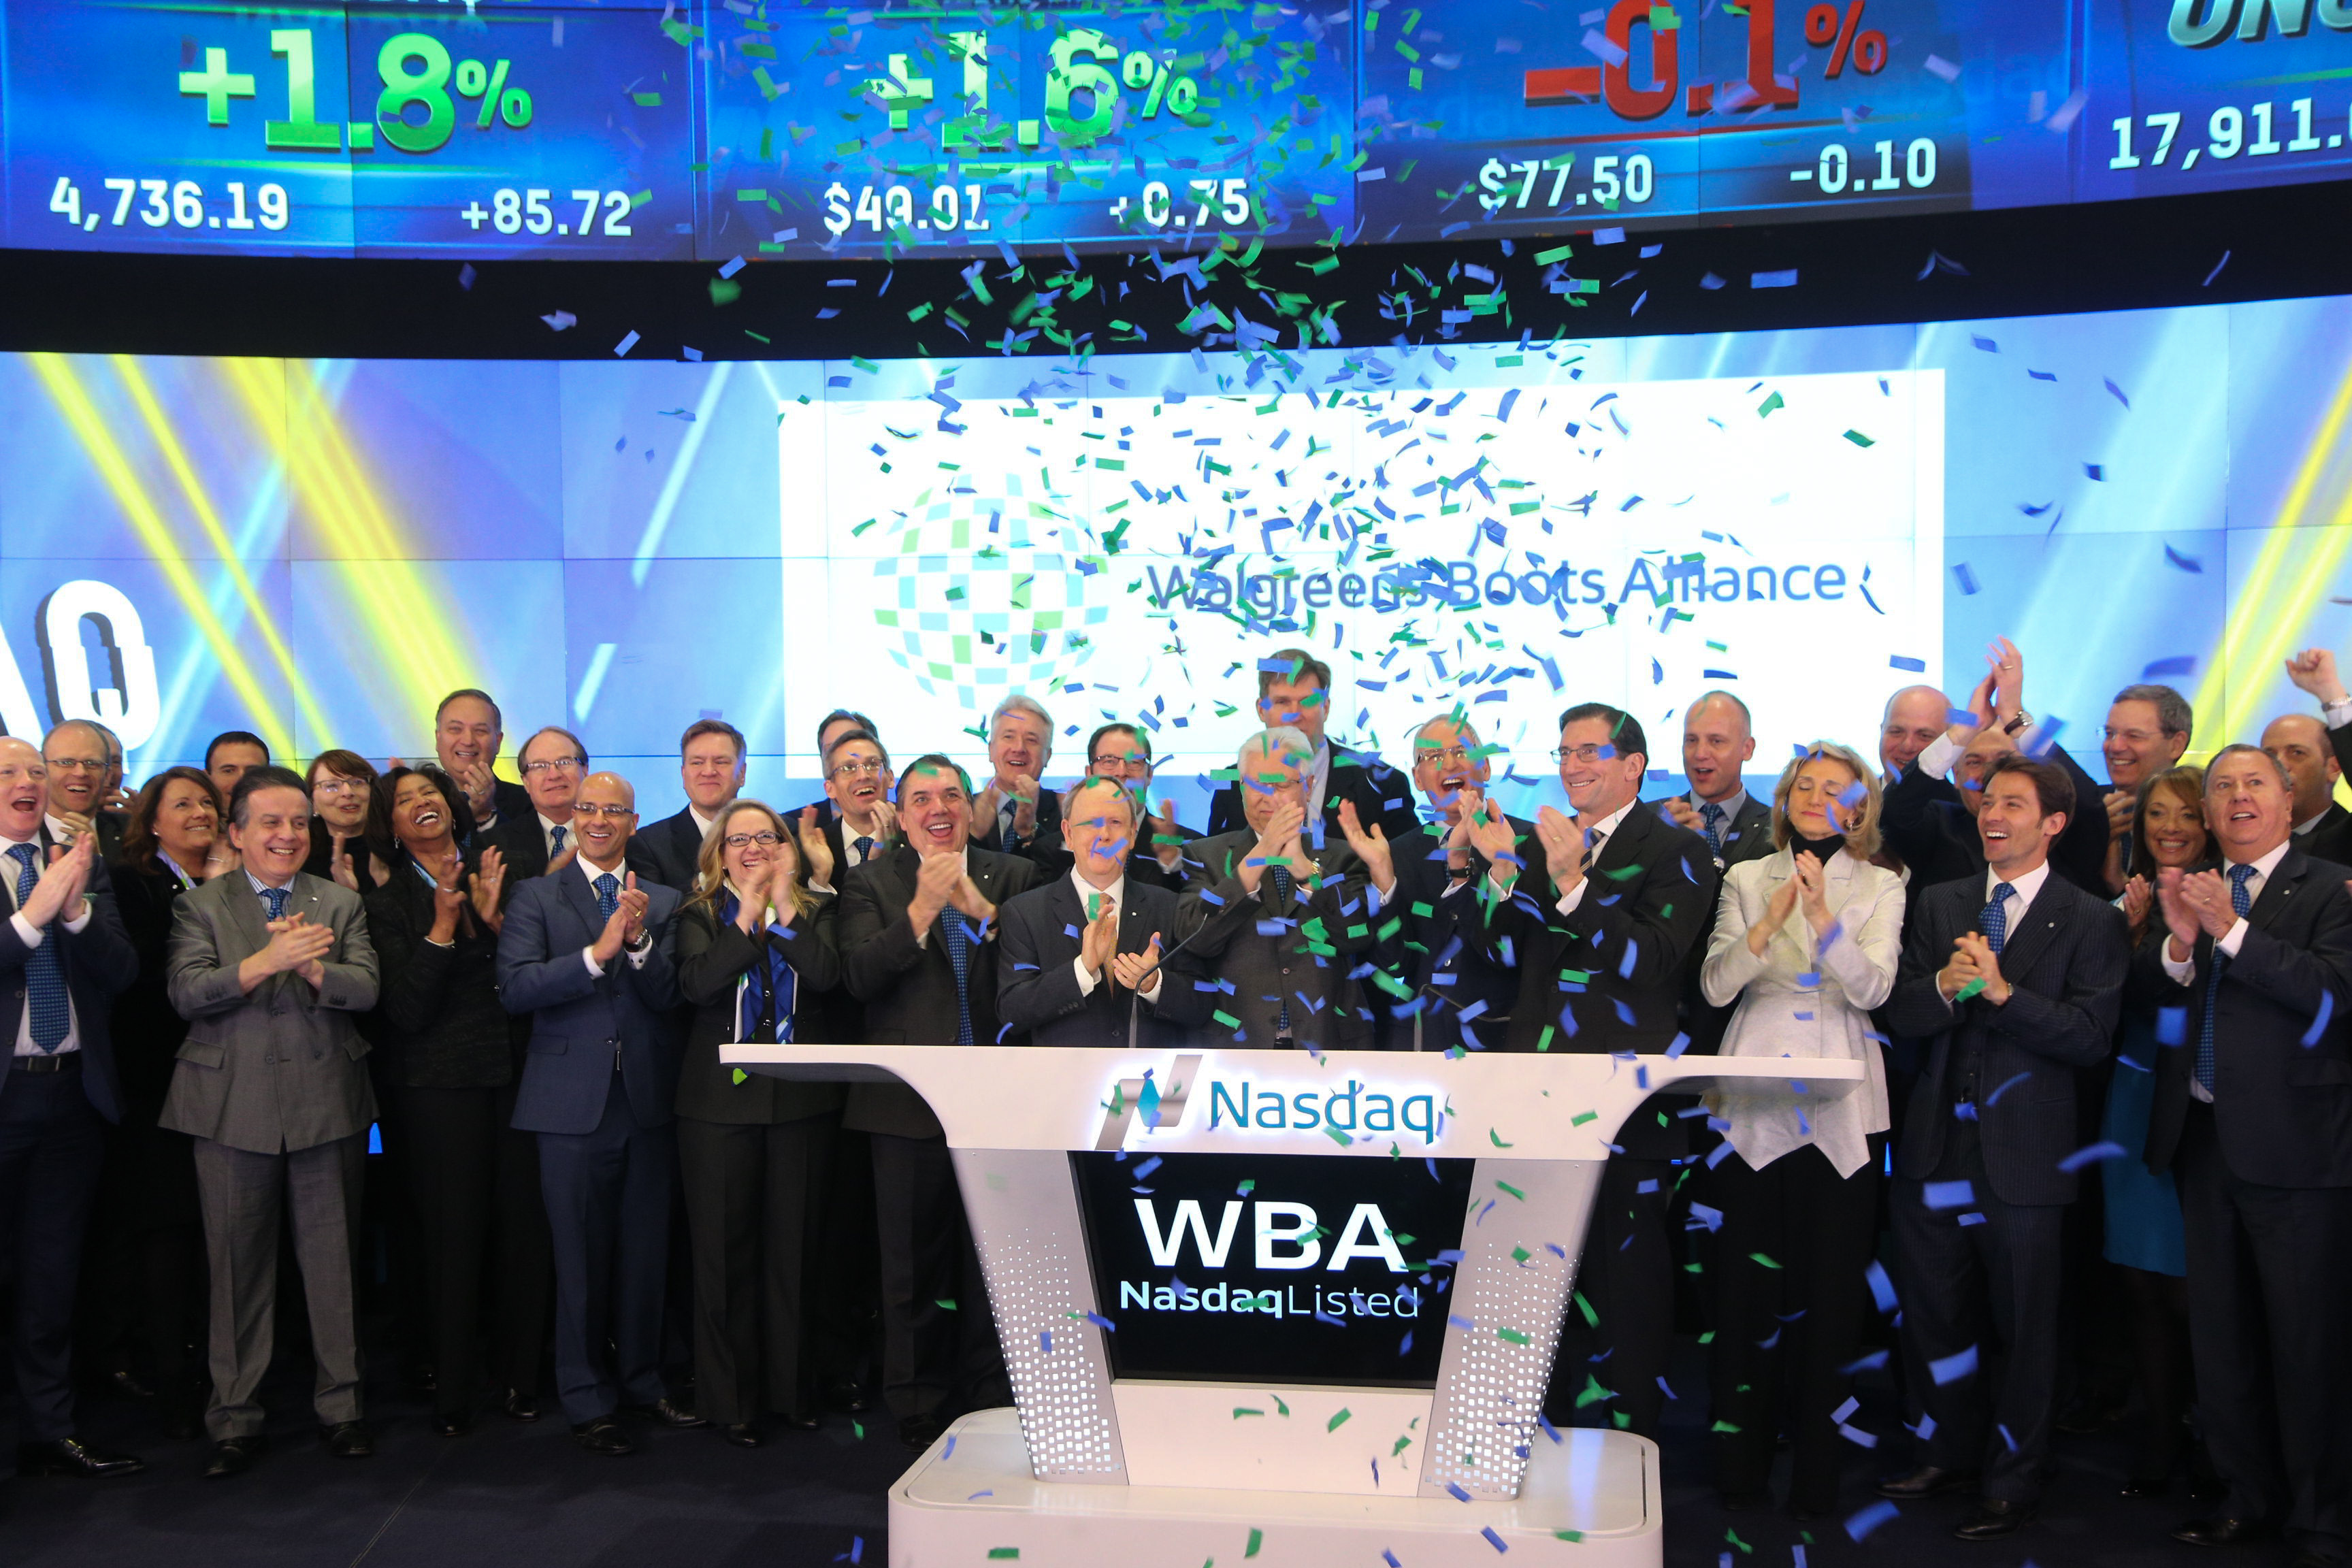 Walgreens Boots Alliance Leaders Ring Opening Bell At Nasdaq